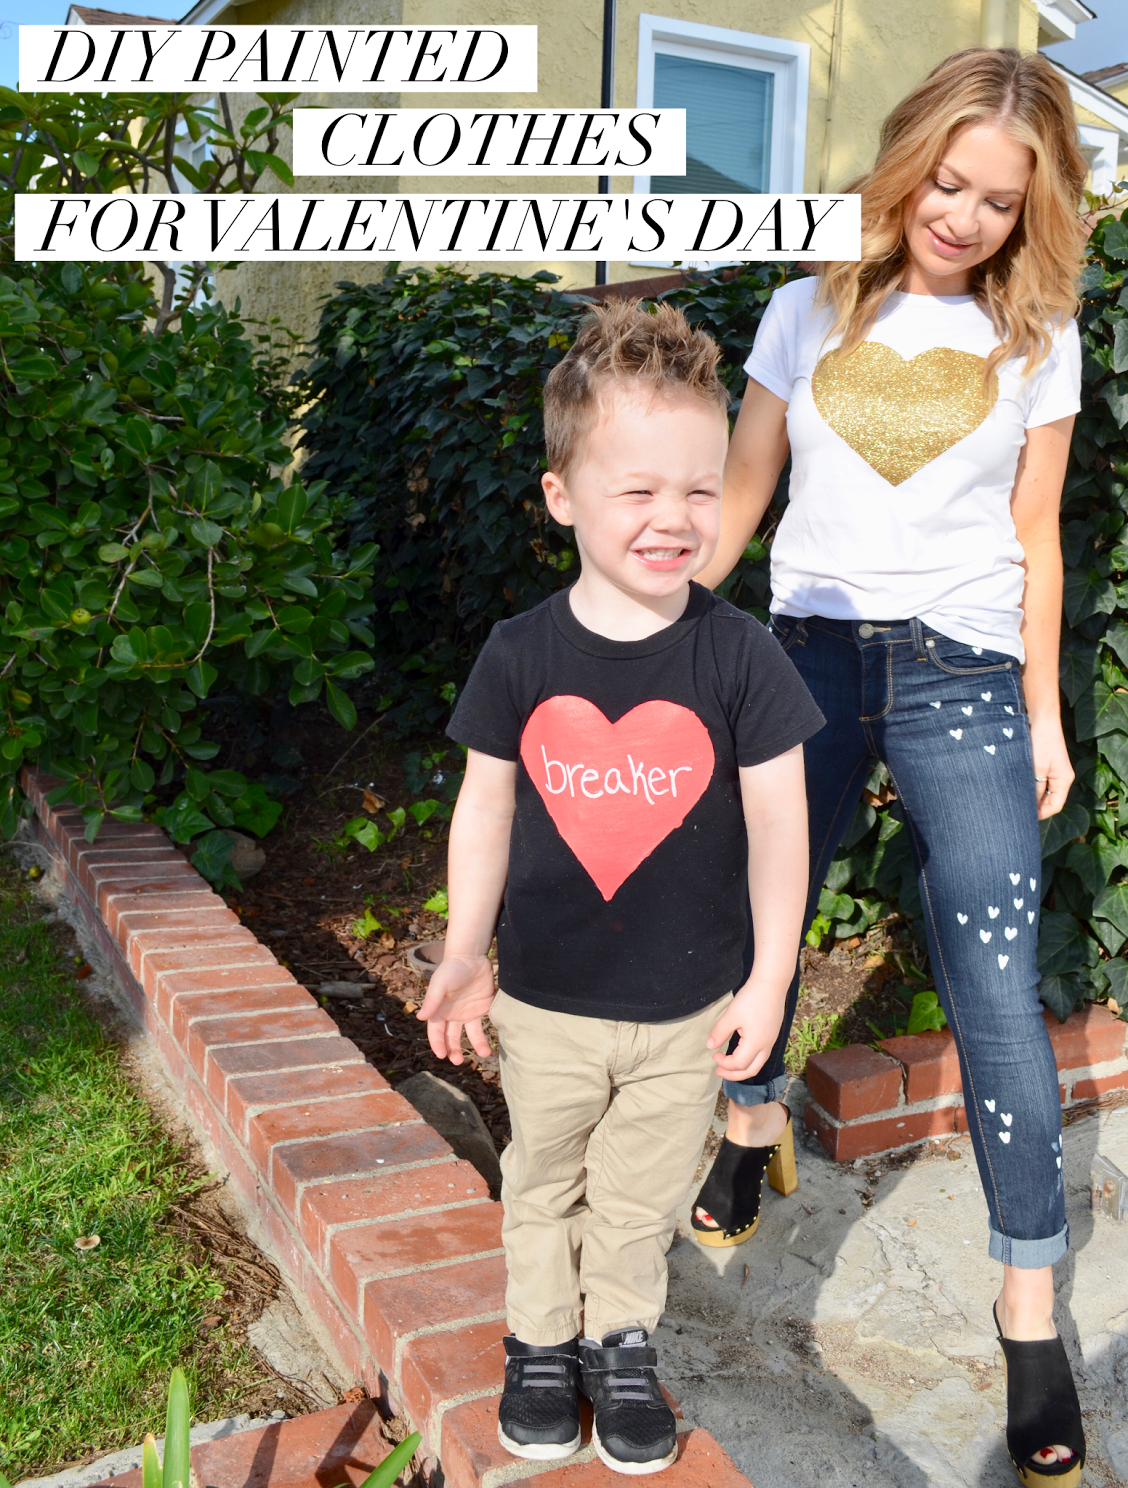 DIY Painted Clothes for Valentine's Day